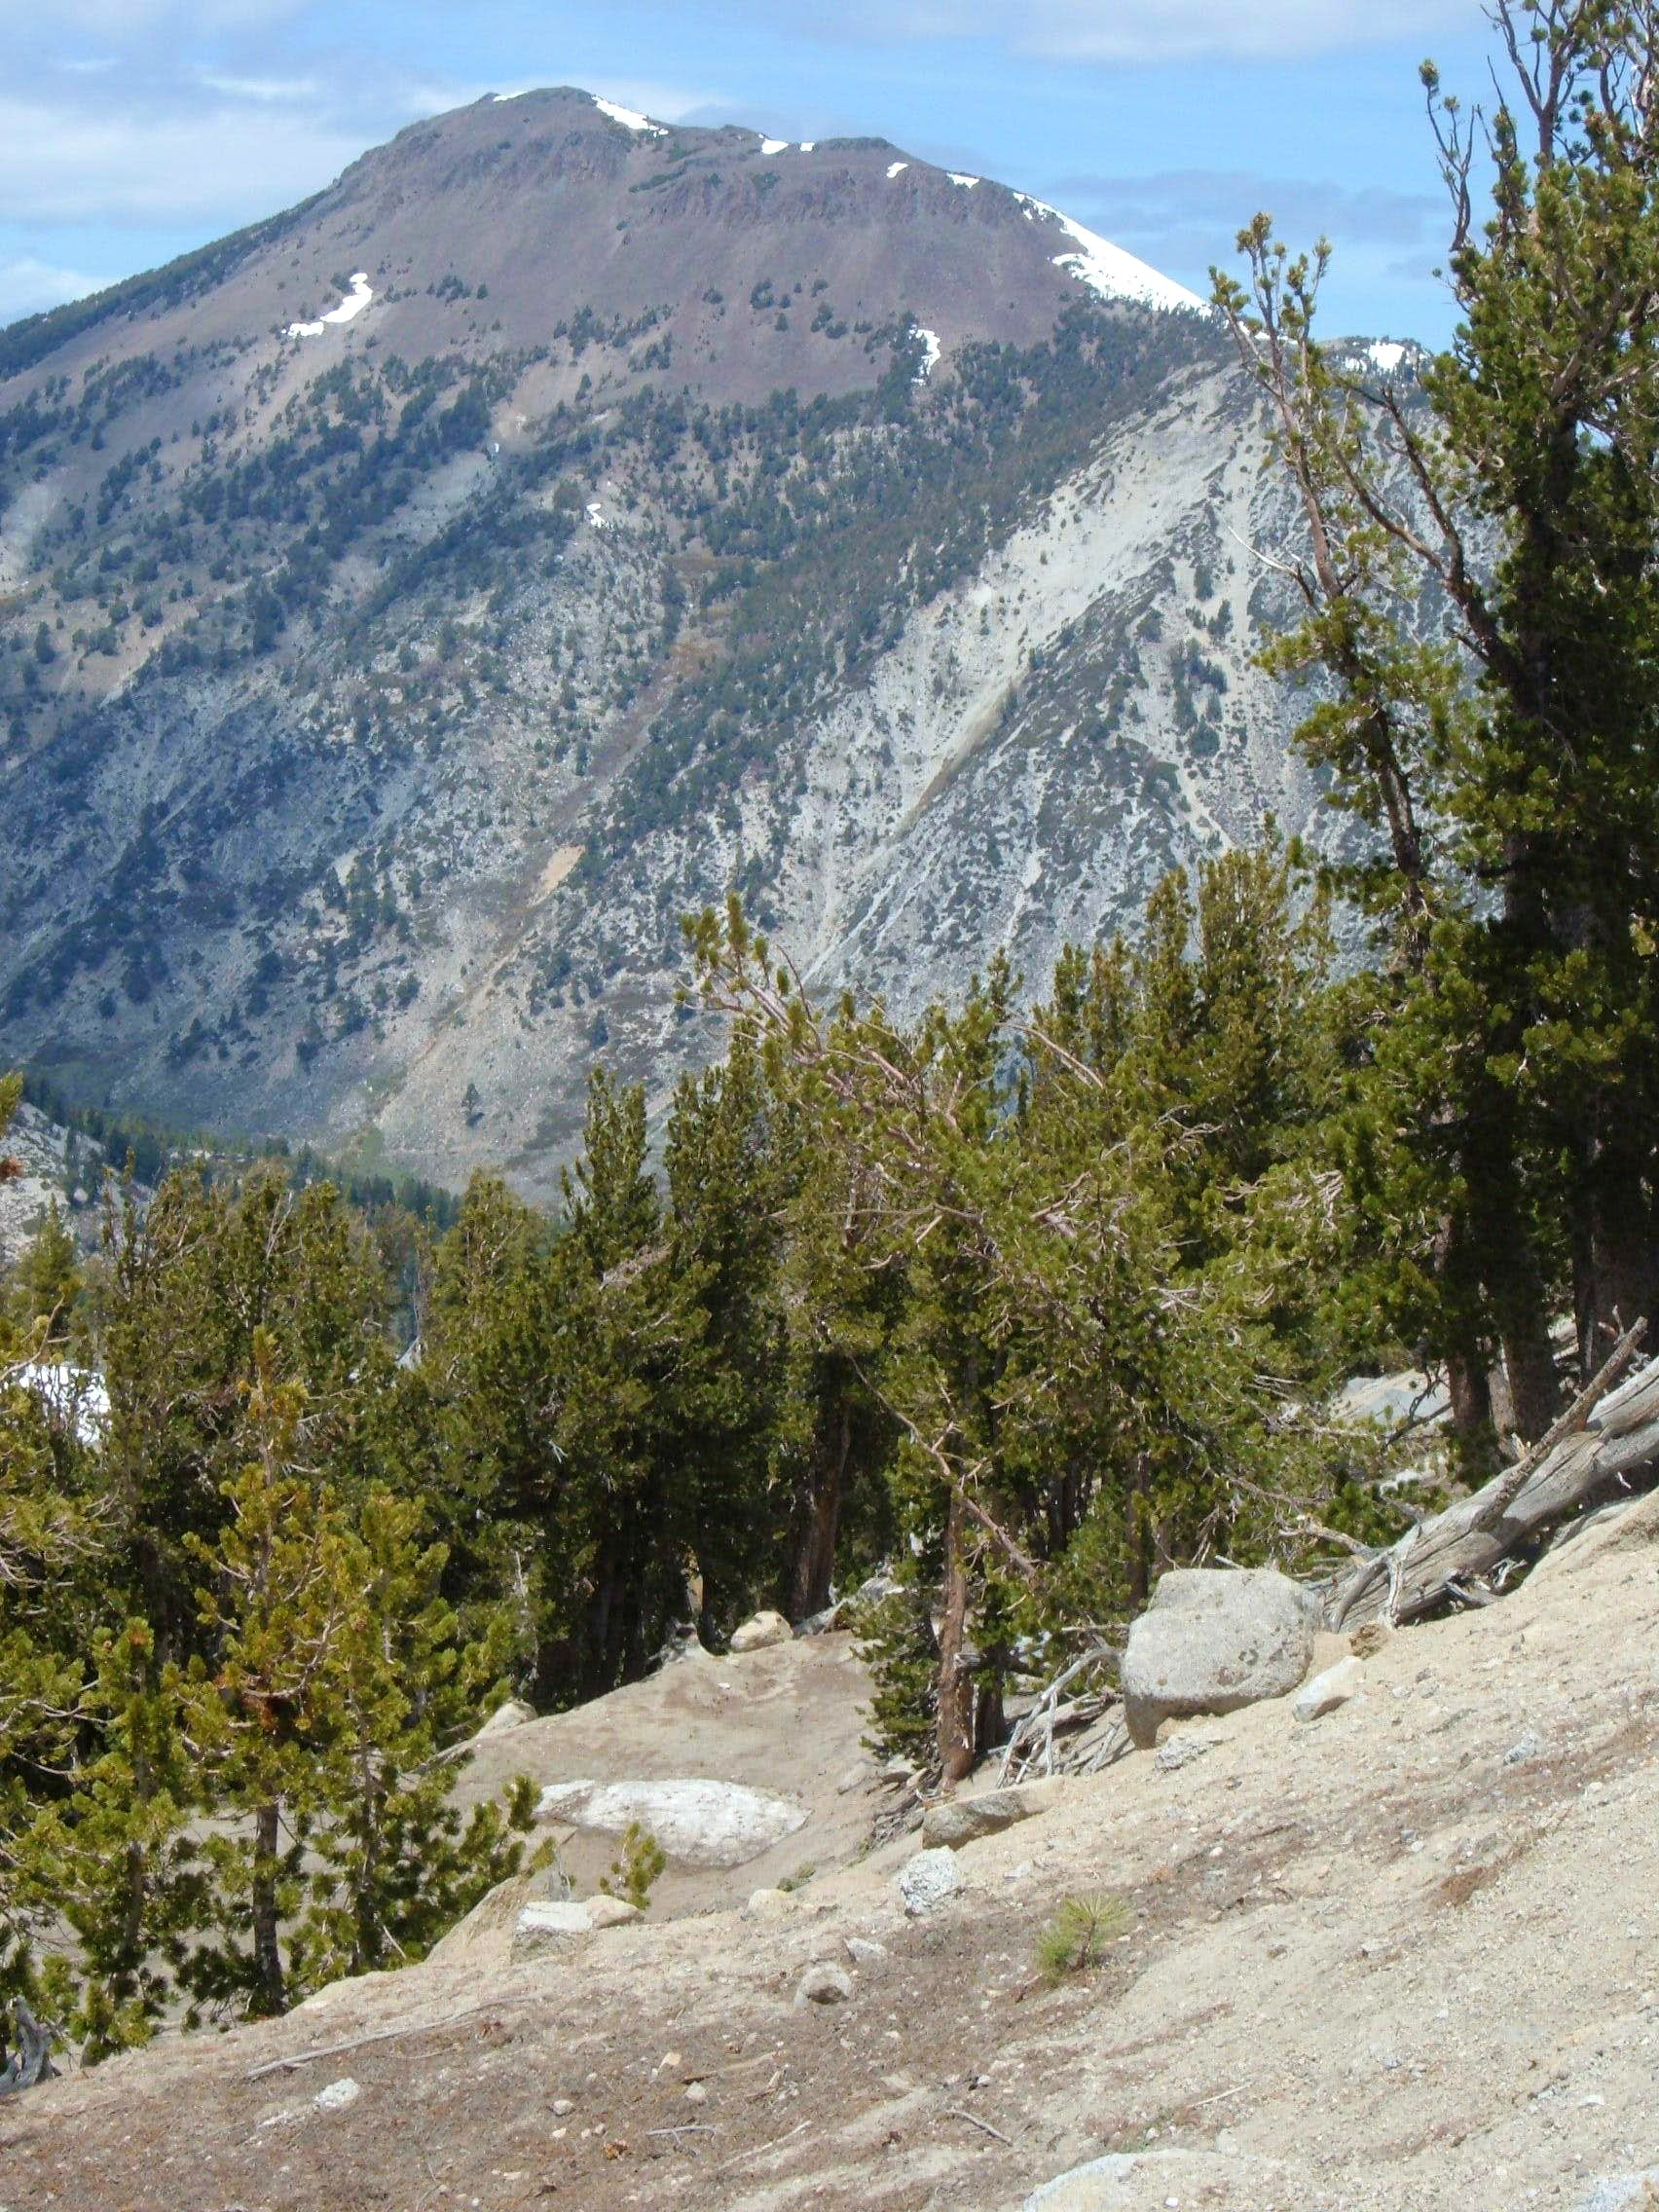 Mount Rose Wilderness